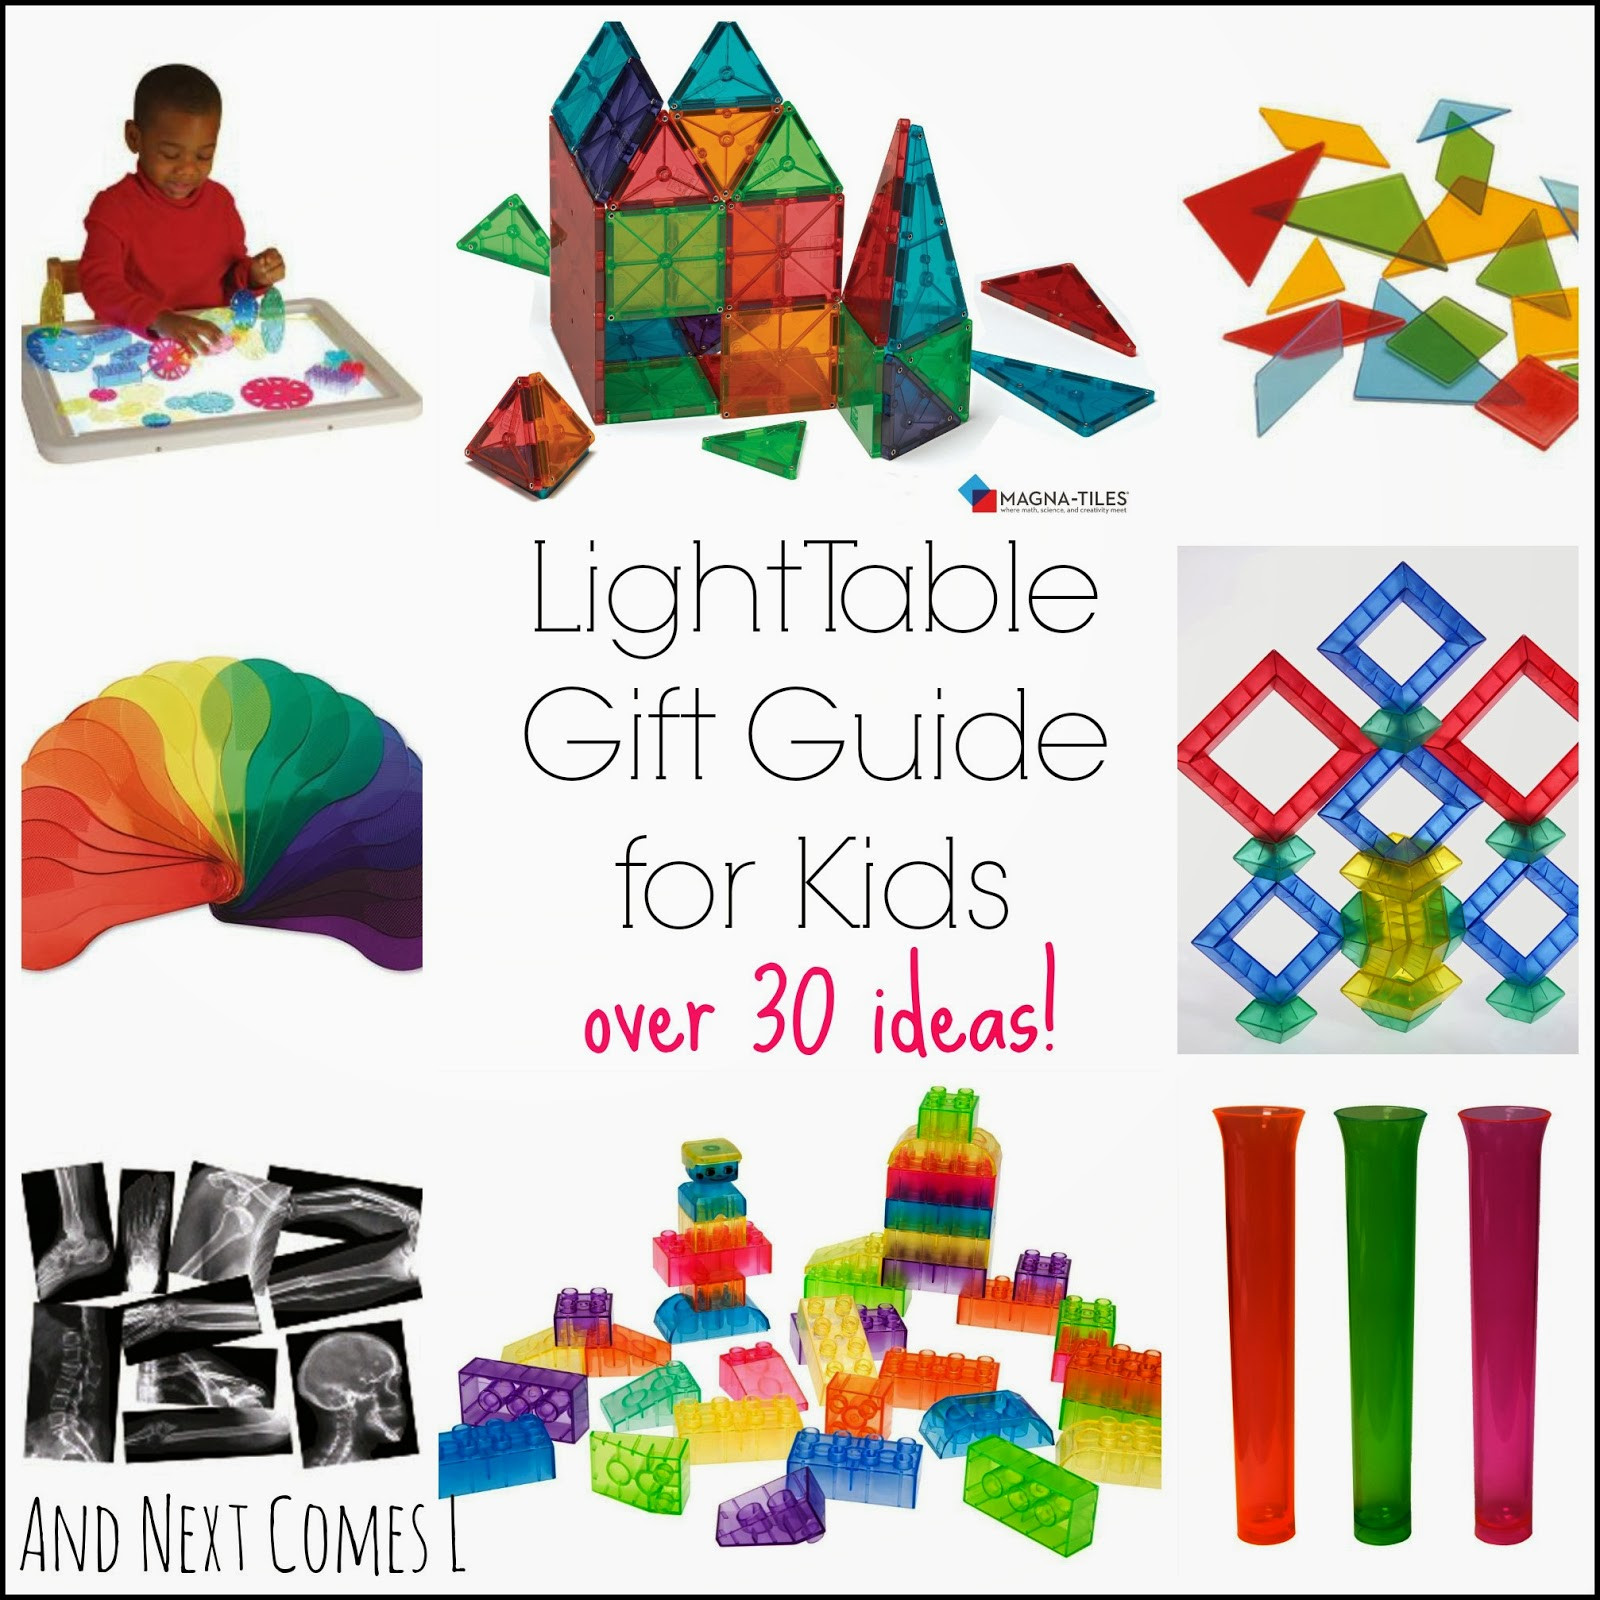 Best ideas about Light Table For Kids . Save or Pin Light Table Gift Guide for Kids Now.